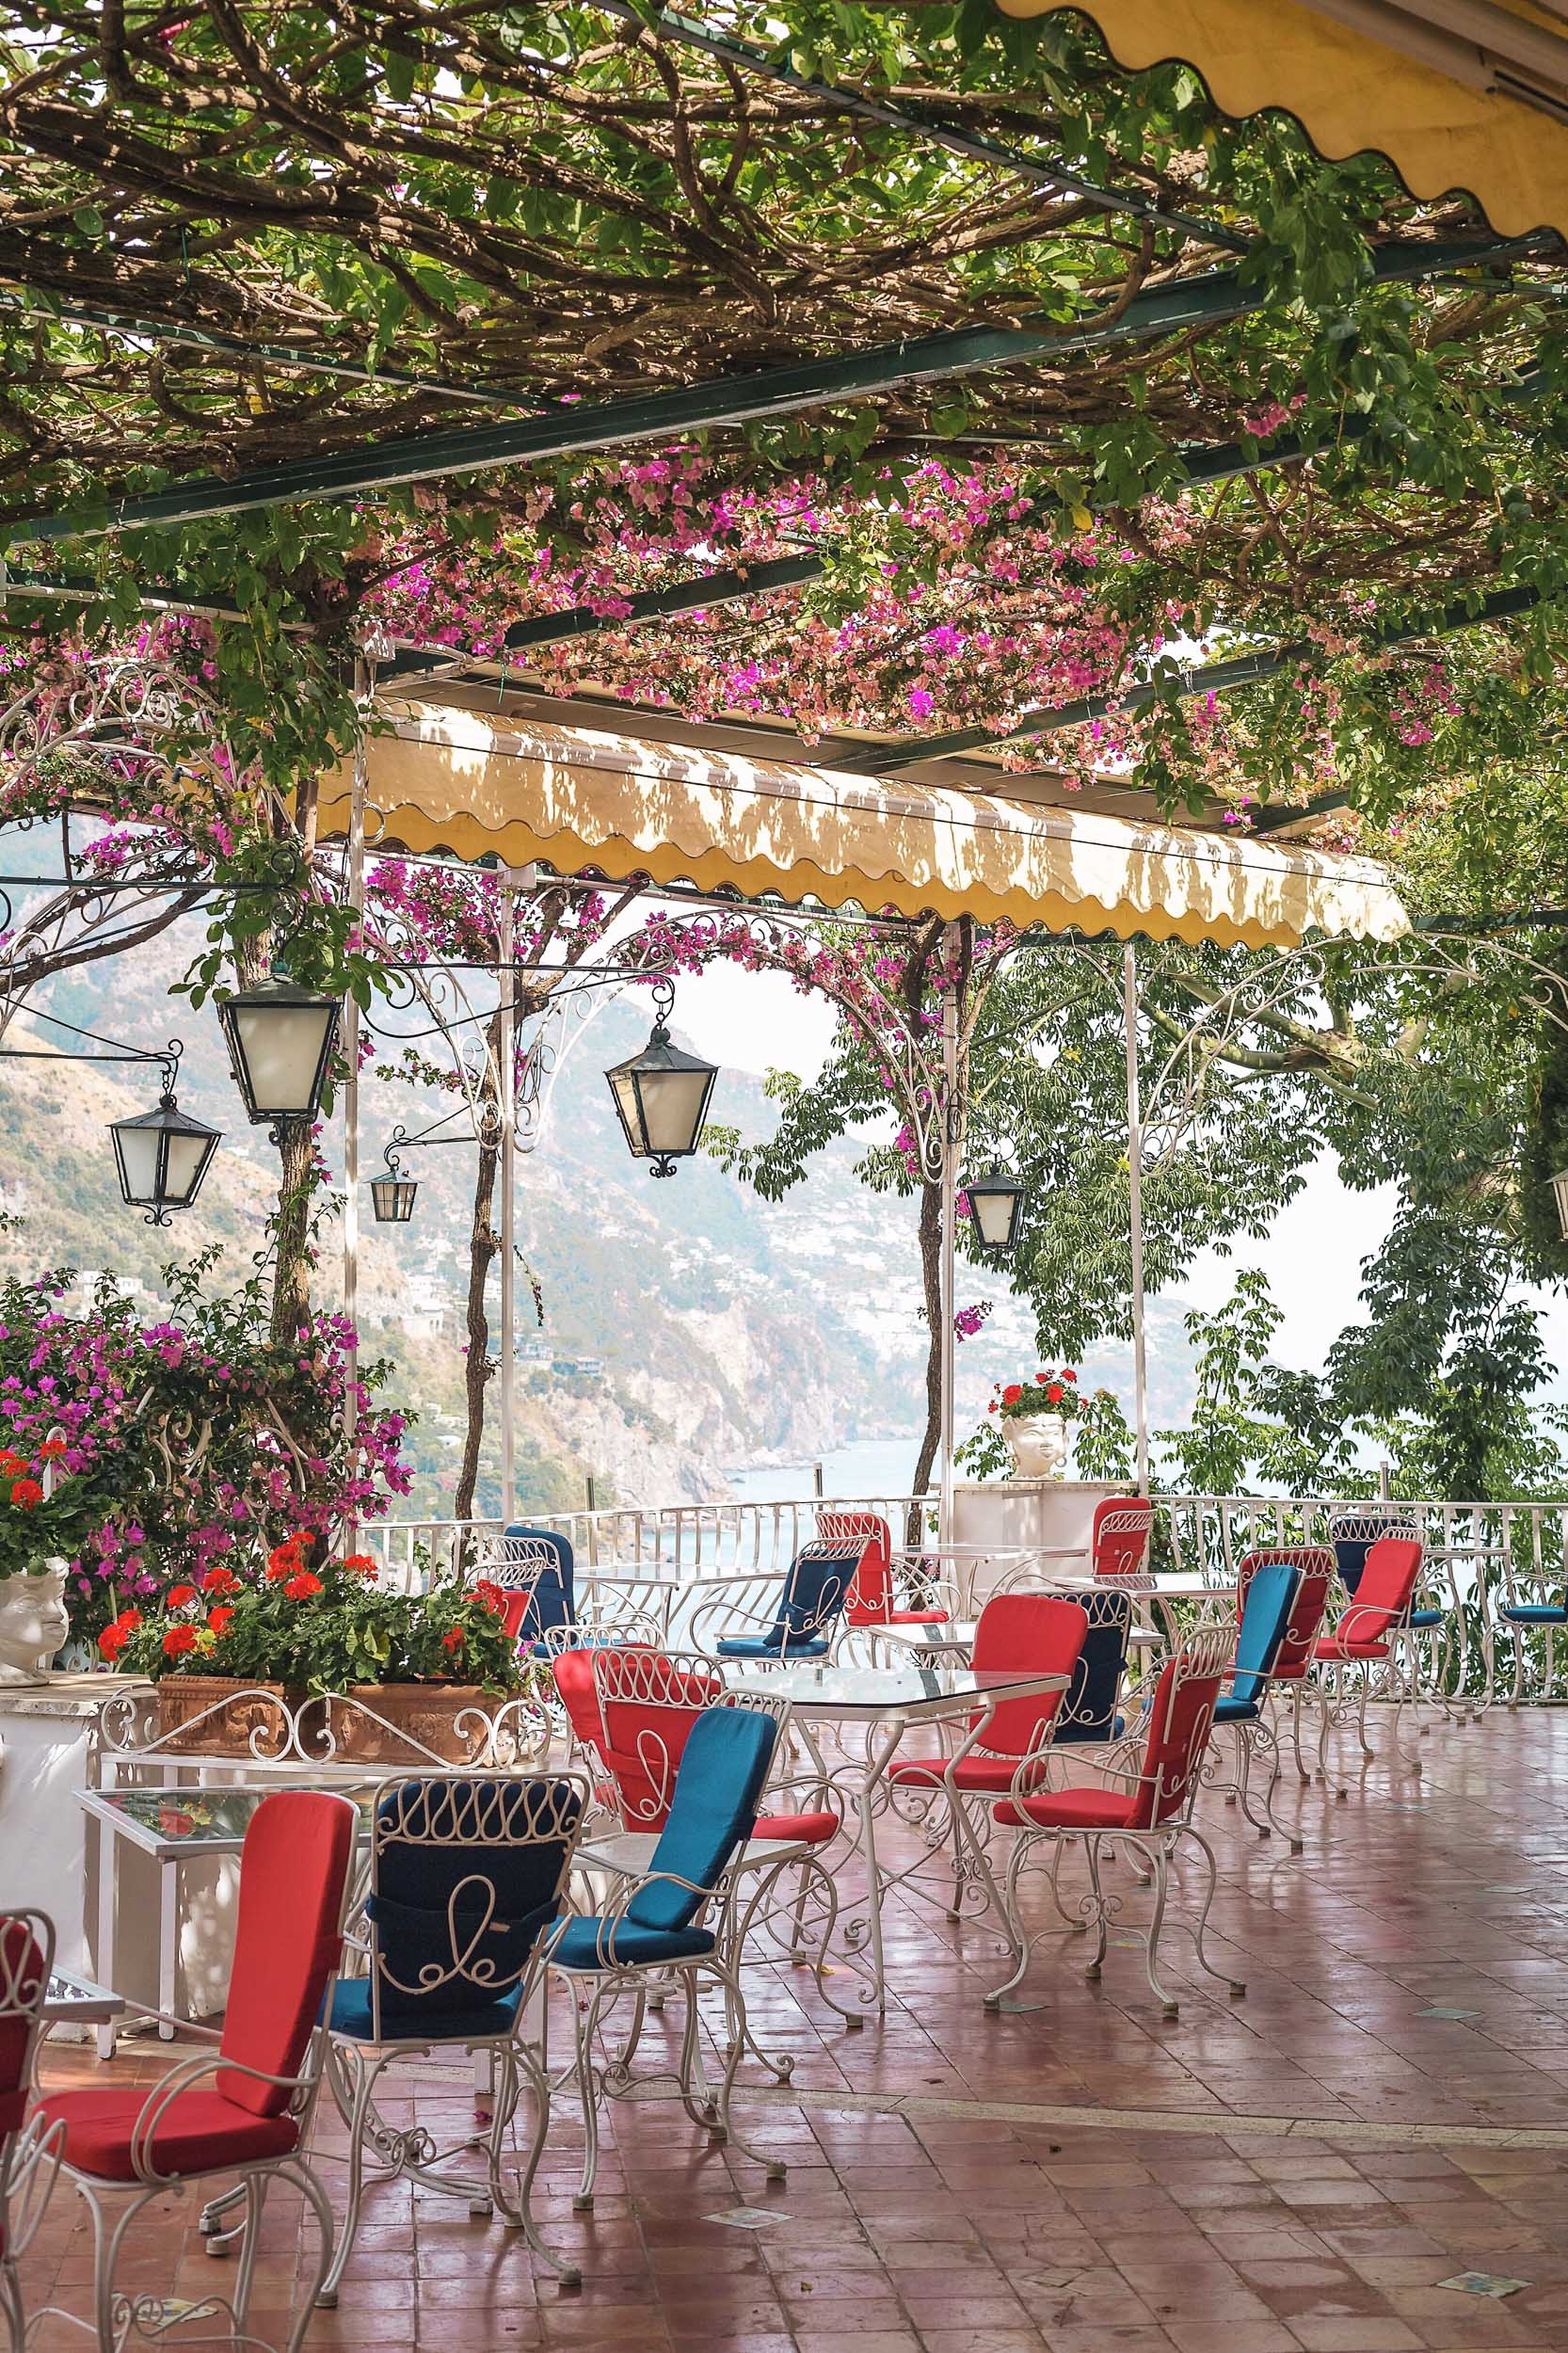 Hotel Poseidon in Positano, a place you should not miss when you visit the Amalfi Coast